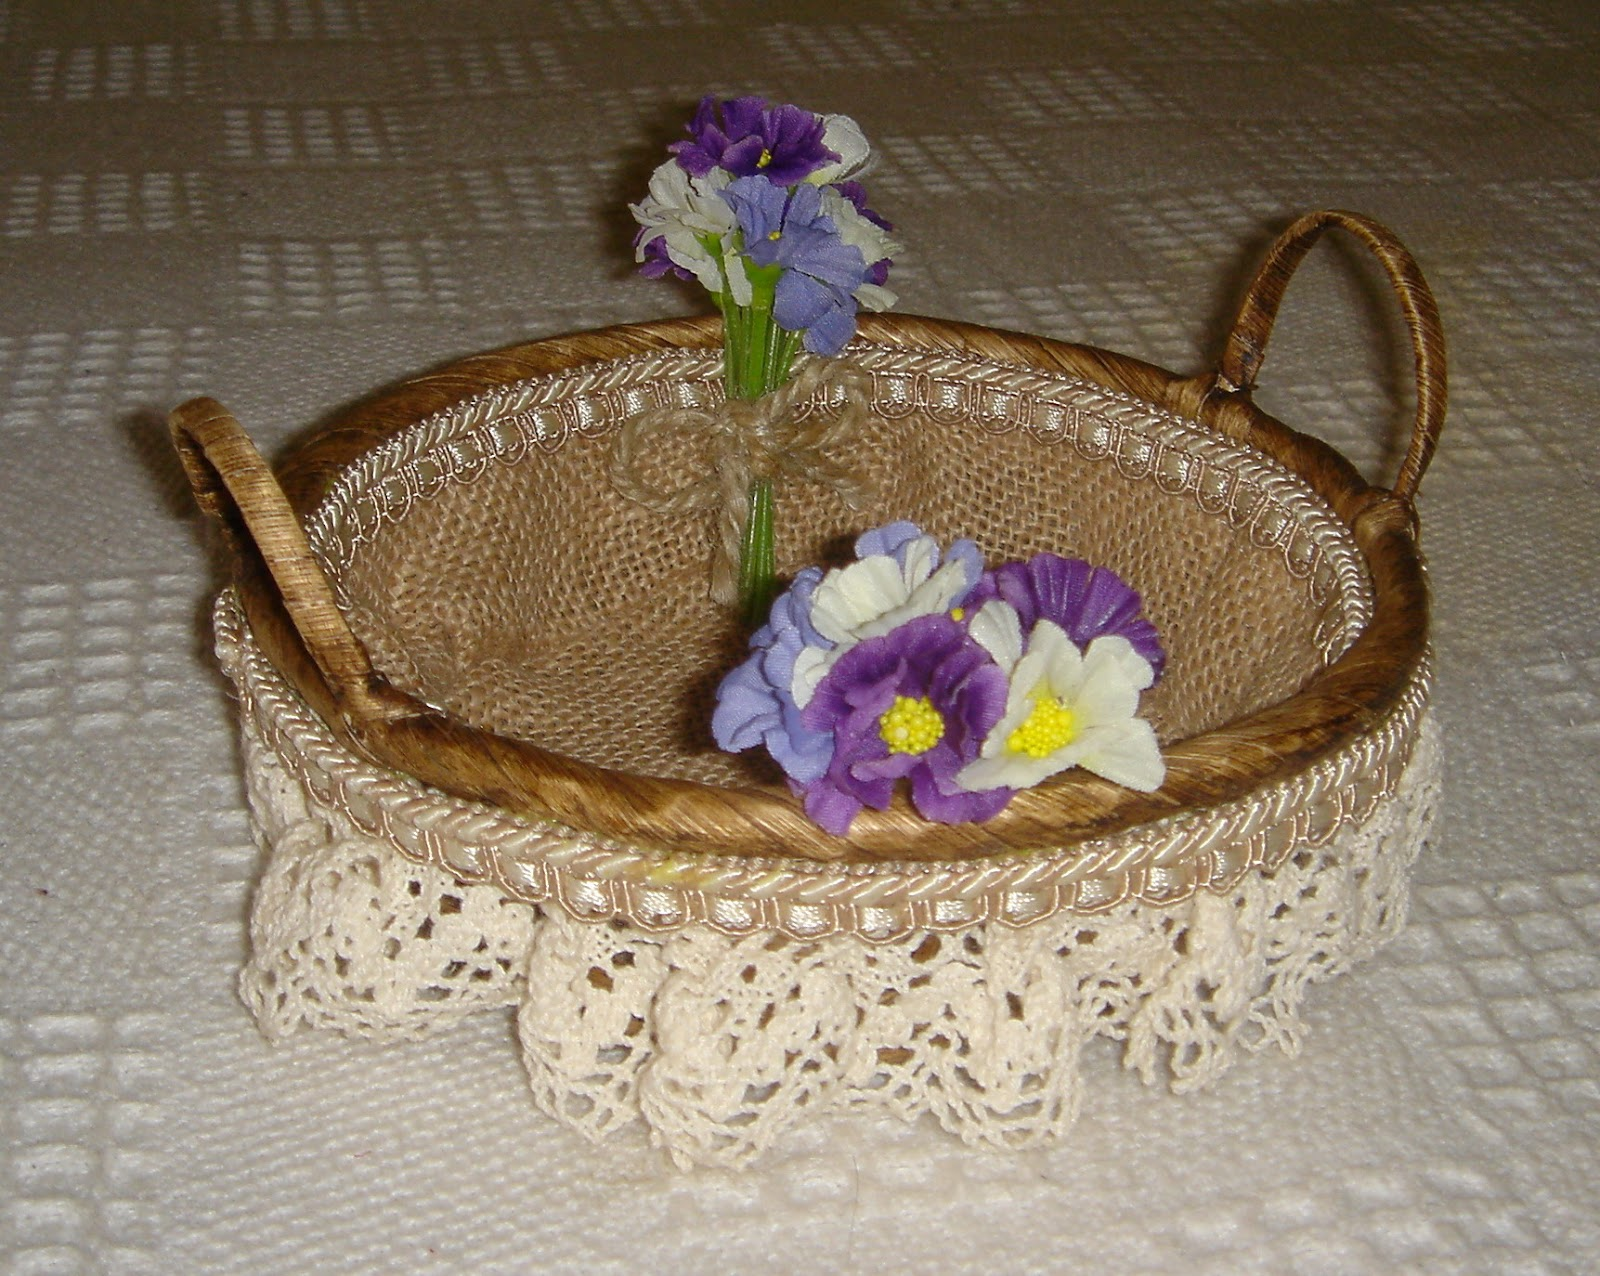 Decoraci n de cesta imagui for Decoracion de cestas